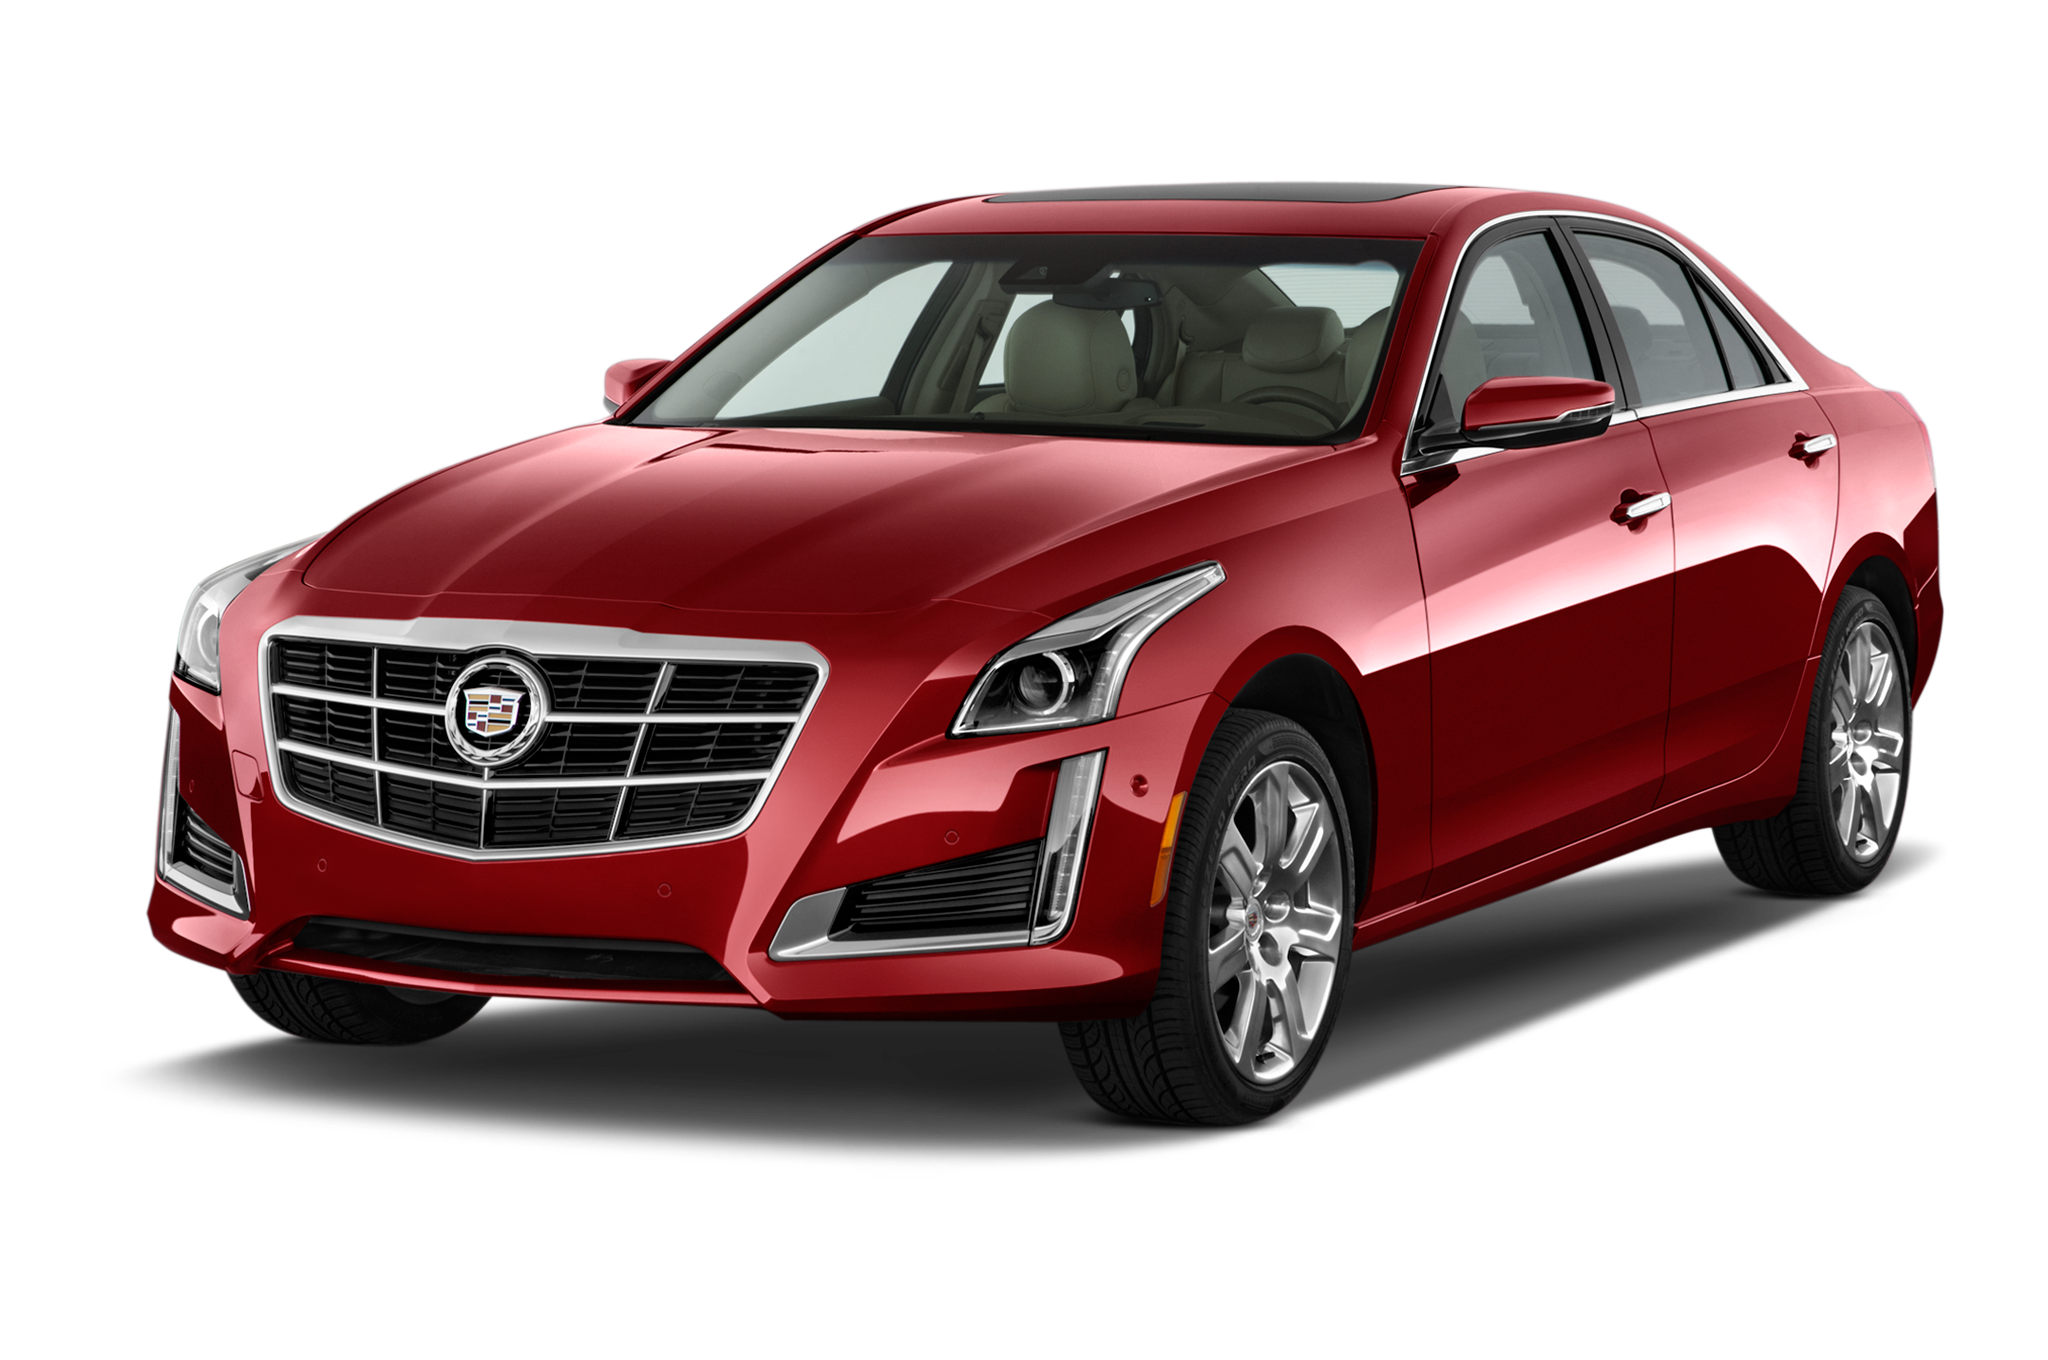 reviews cadillac updates car image s download of cts features price amp